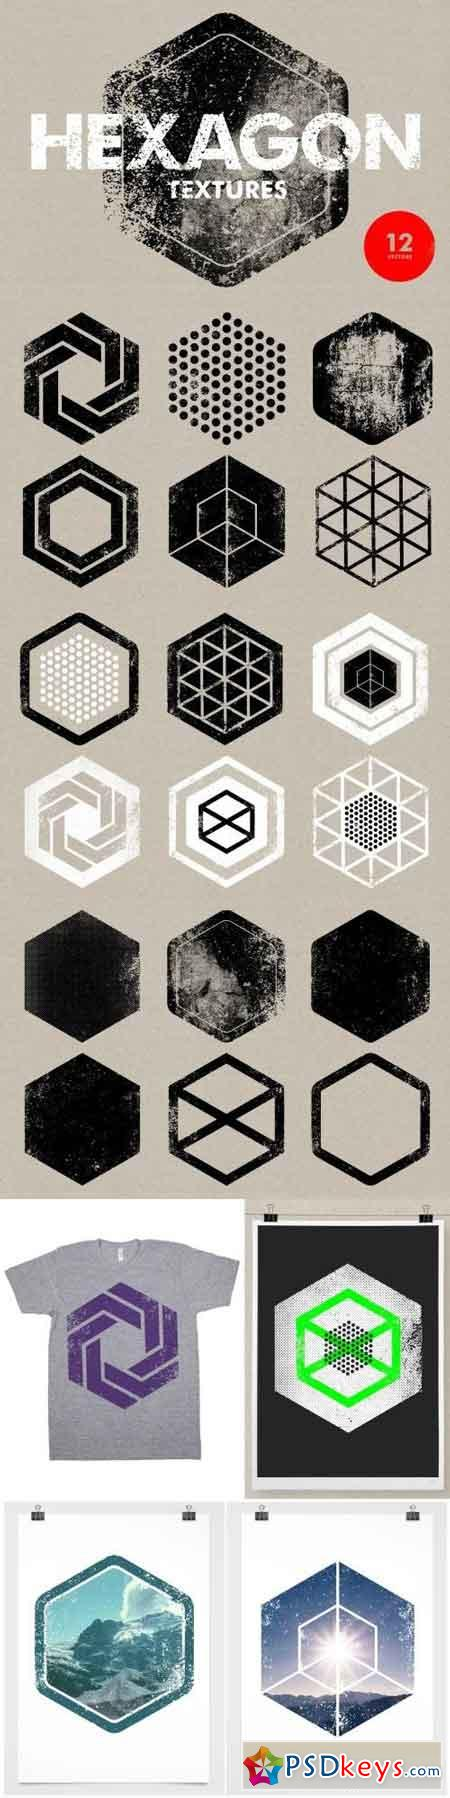 Hexagon Textures